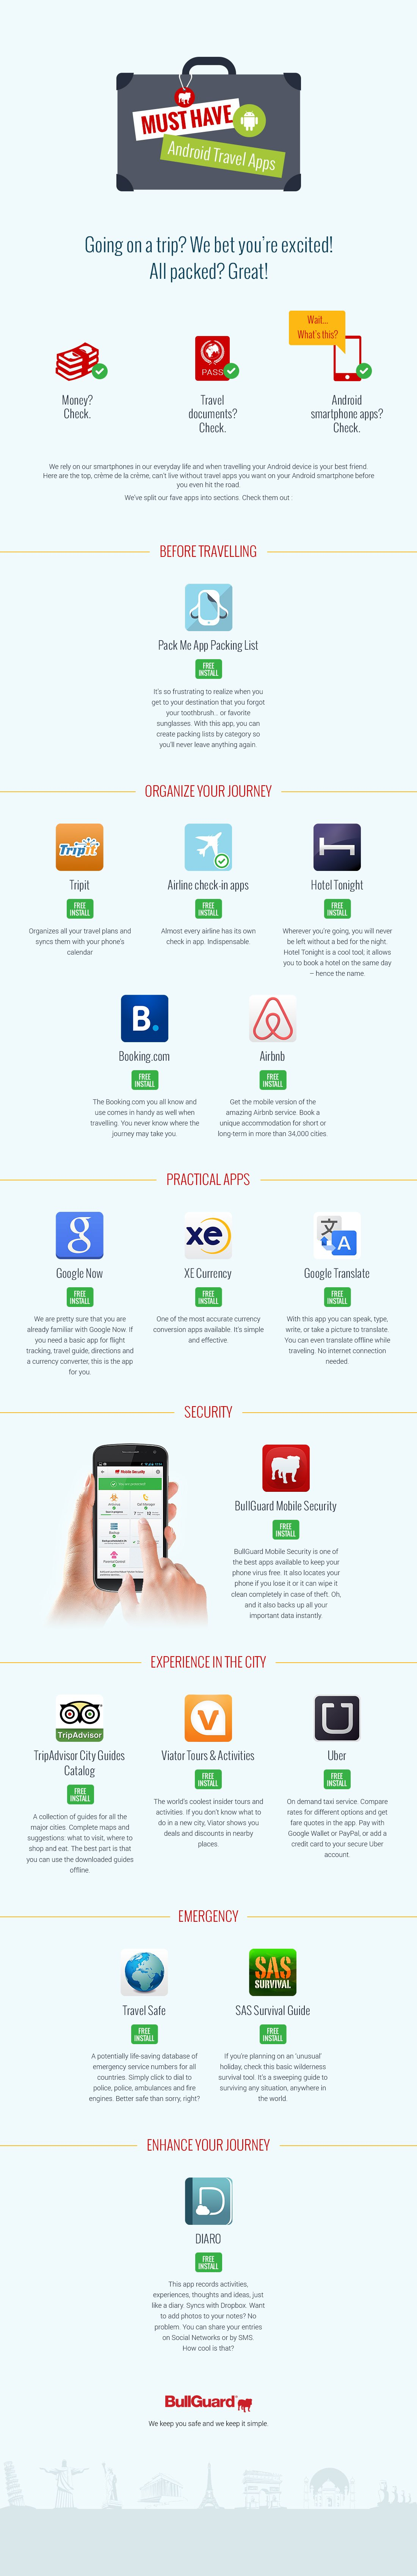 Must Have Android Travel Apps infographic